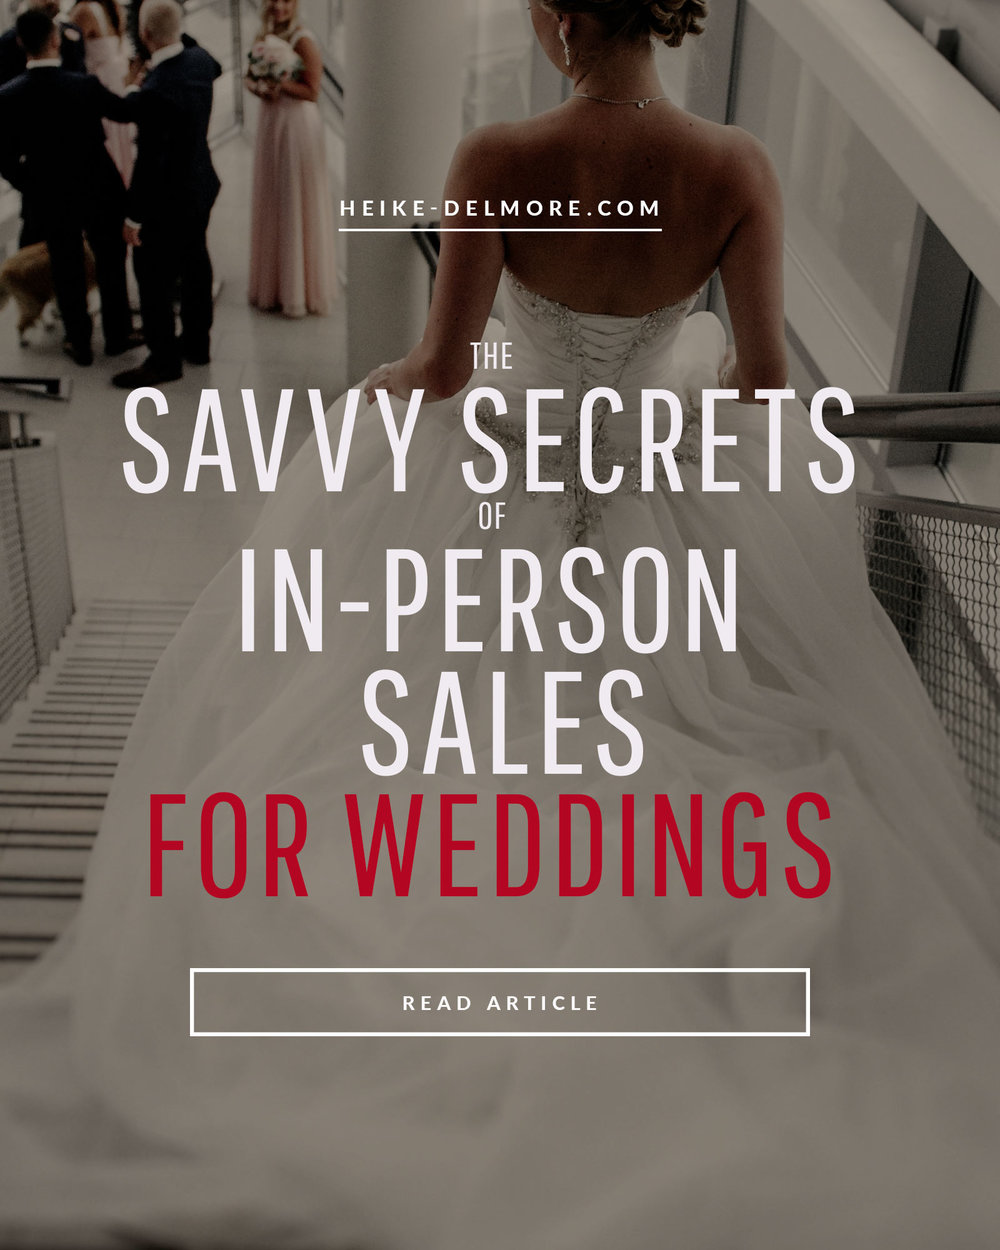 blog_savvy_secrets_ips_weddings.jpg